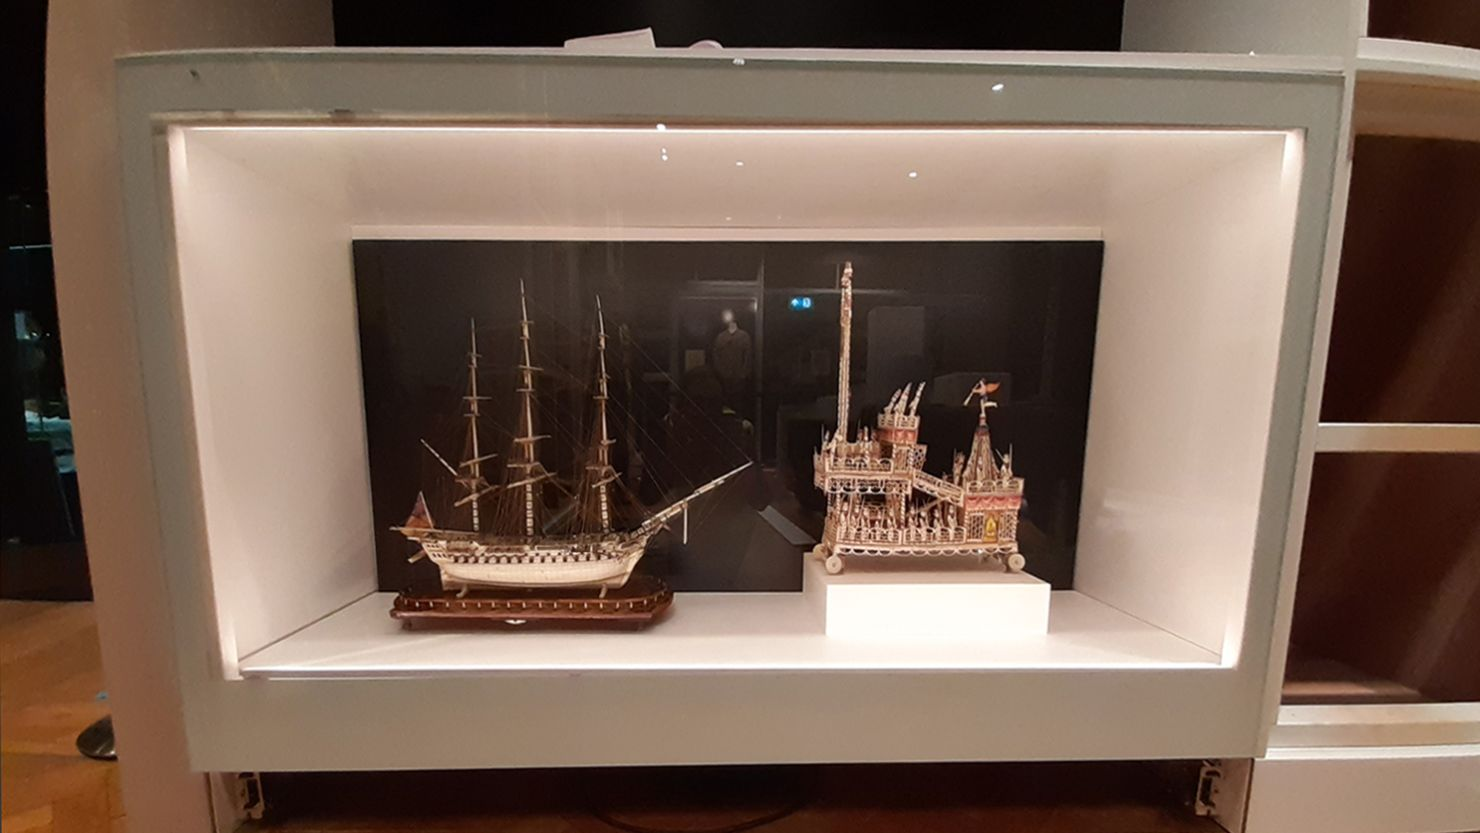 Bone model of a ship in a display case